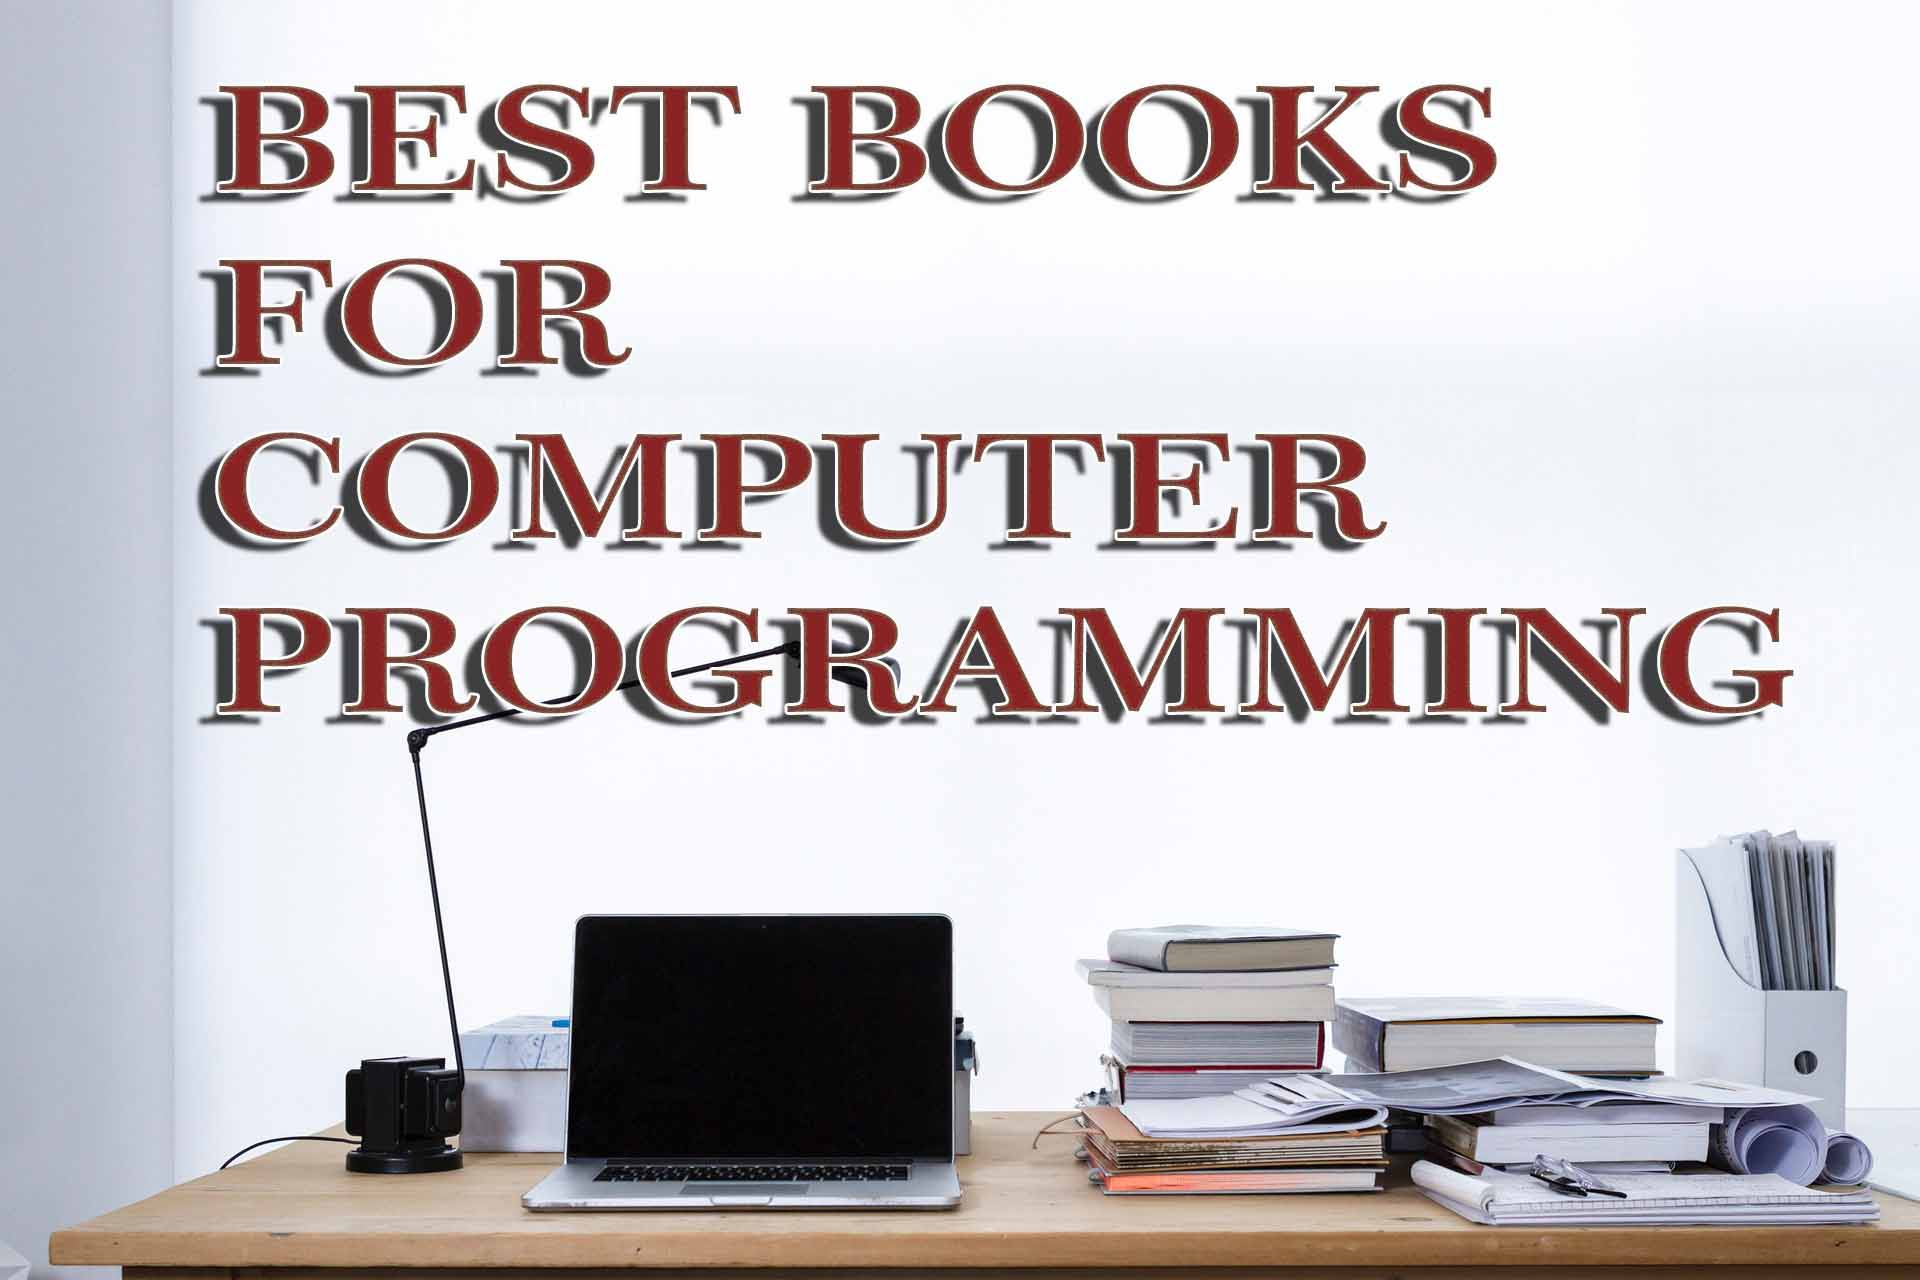 Which are the Best Books for Computer Programming 2019?